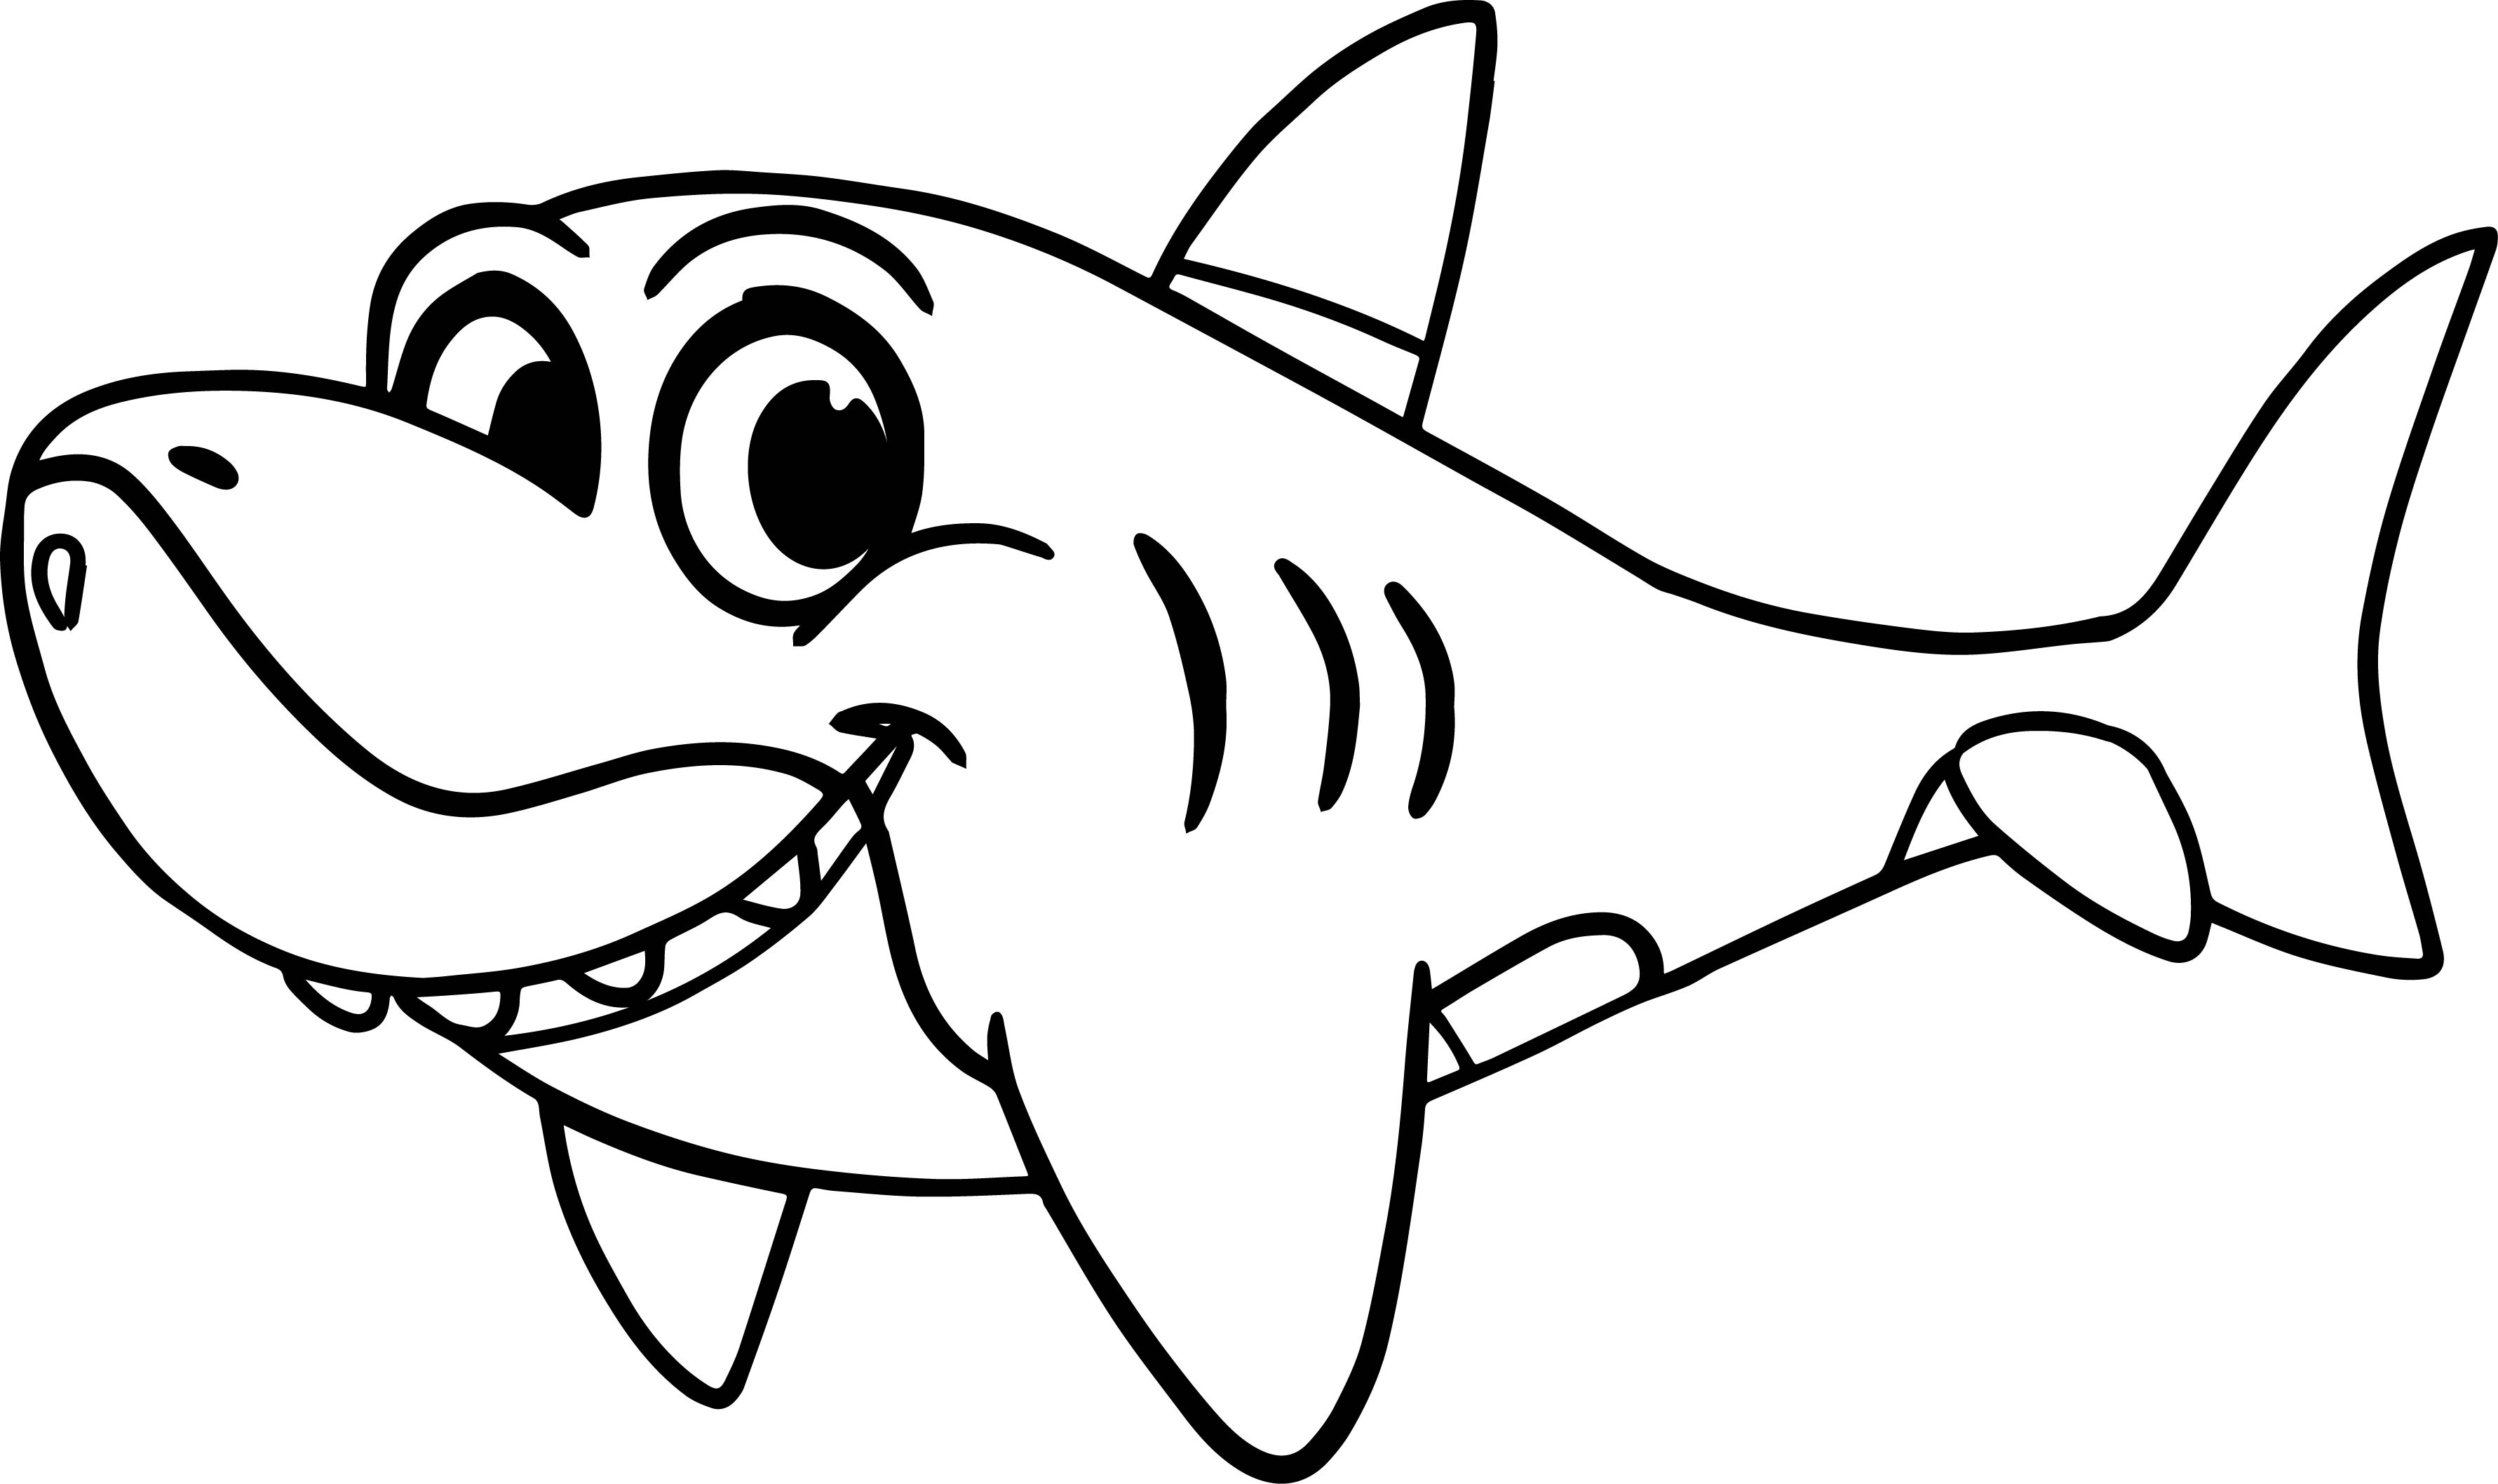 morphle cartoon my cute shark coloring page wecoloringpage jaws coloring pages coloring pages sharks